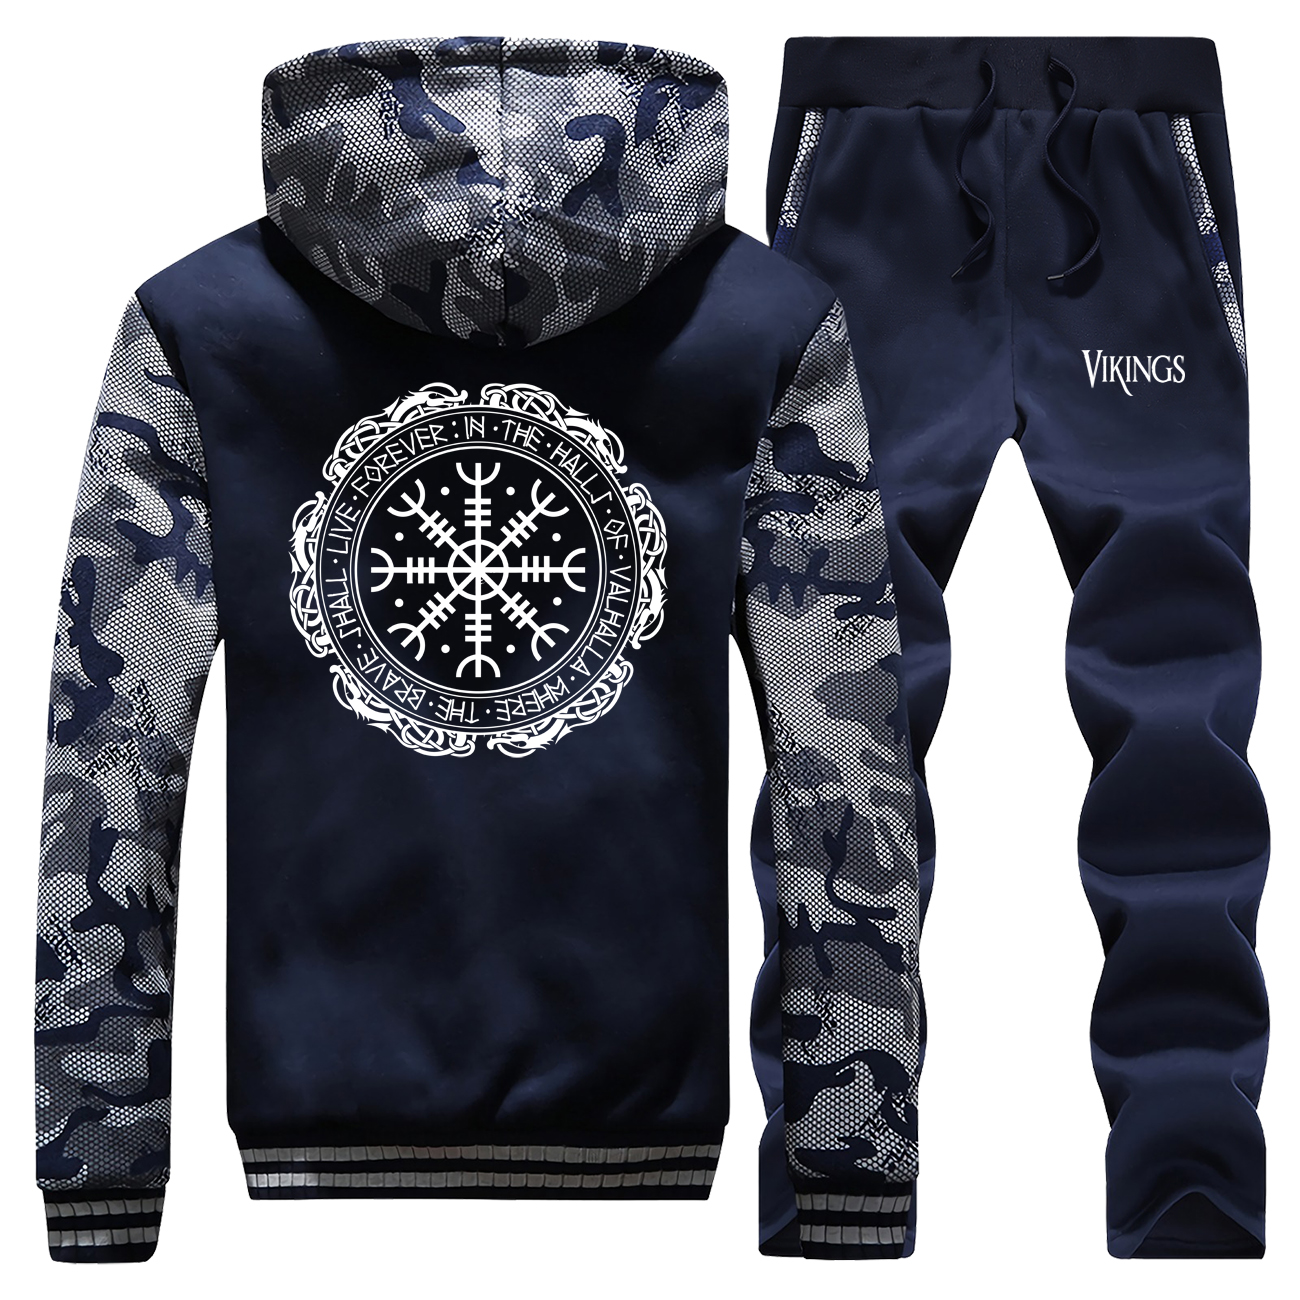 Viking Valhalla Print Tracksuit Men Warm Set Thick Camouflage Hoodies Sweatshirt Suit Fashion Winter Jacket+Pants 2 Piece Sets